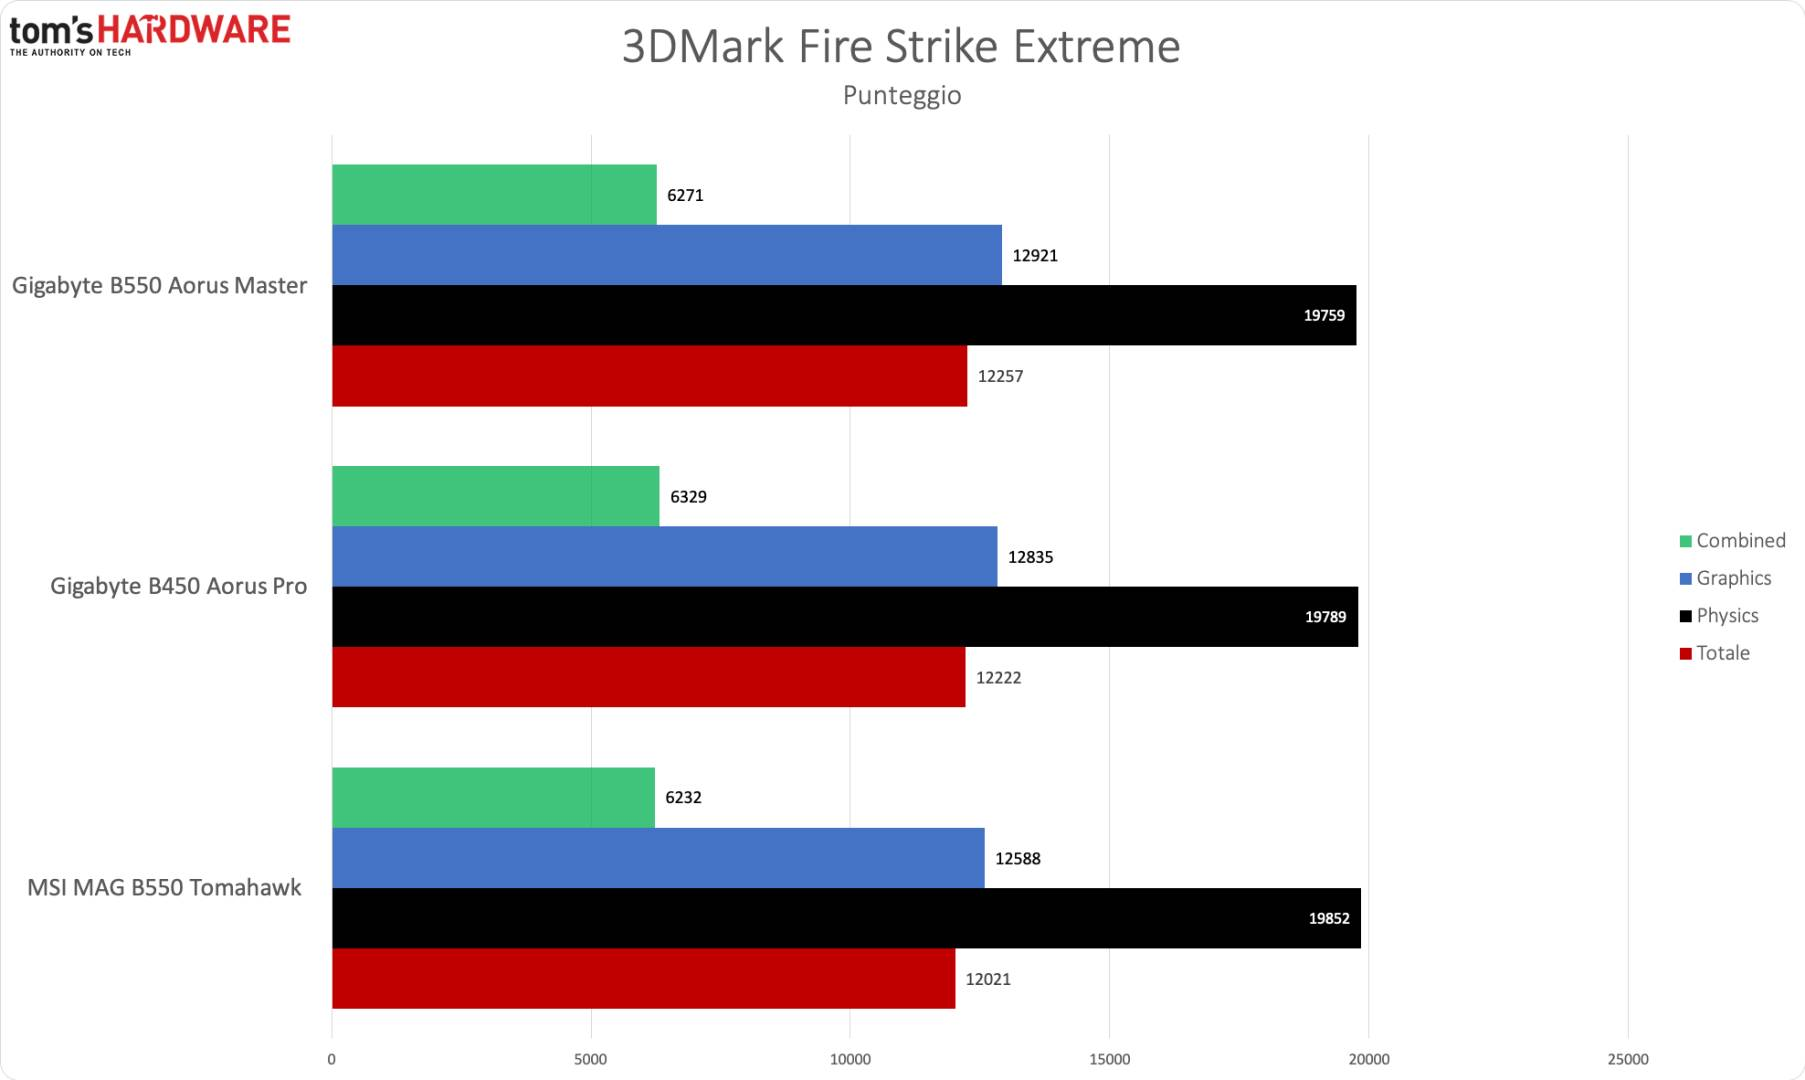 AMD B550 - 3DM Fire Strike